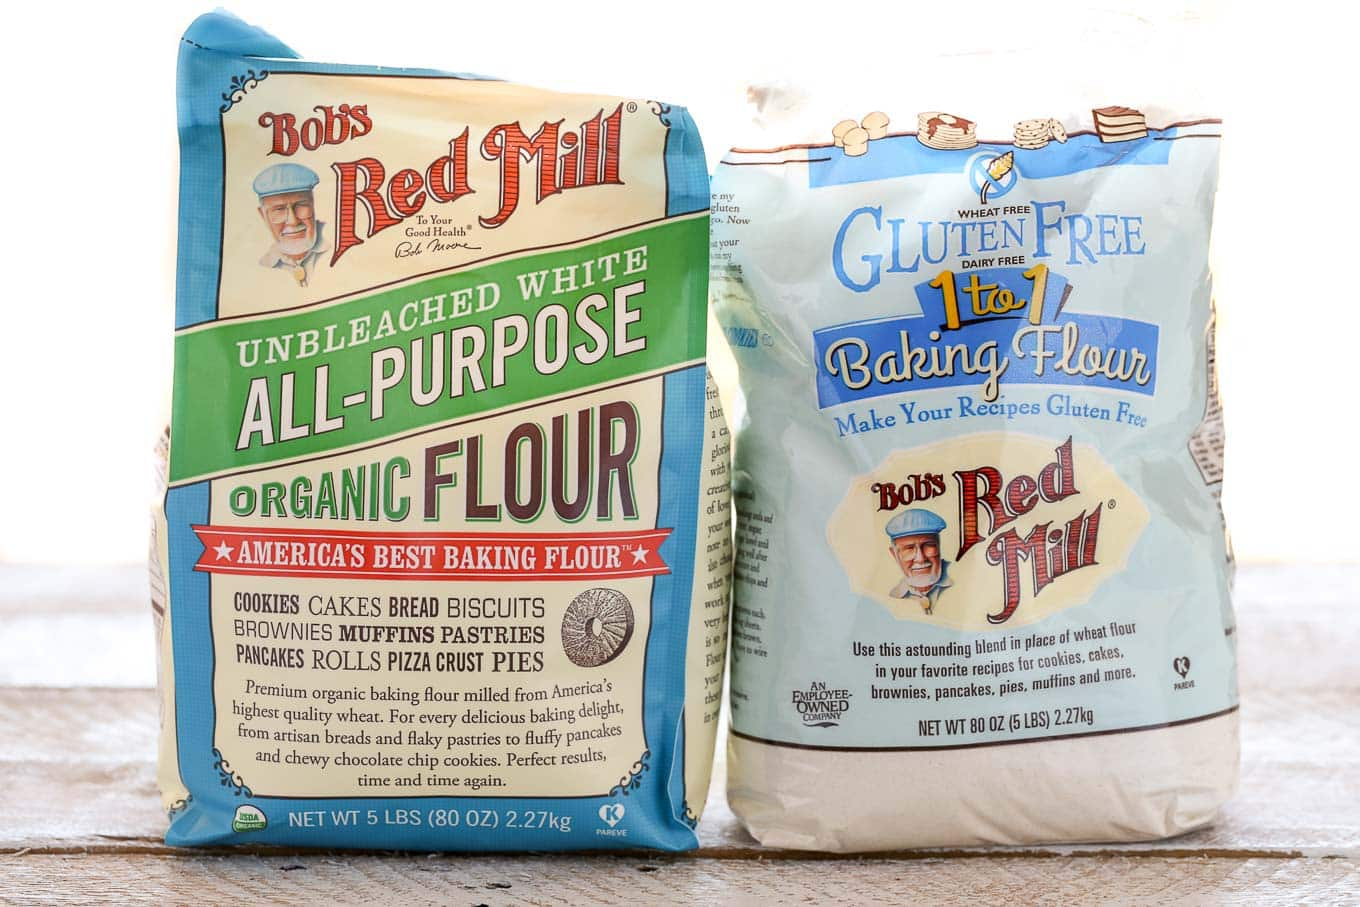 A bag of Bob's Red Mill all-purpose flour next to a bag of gluten-free 1:1 flour.